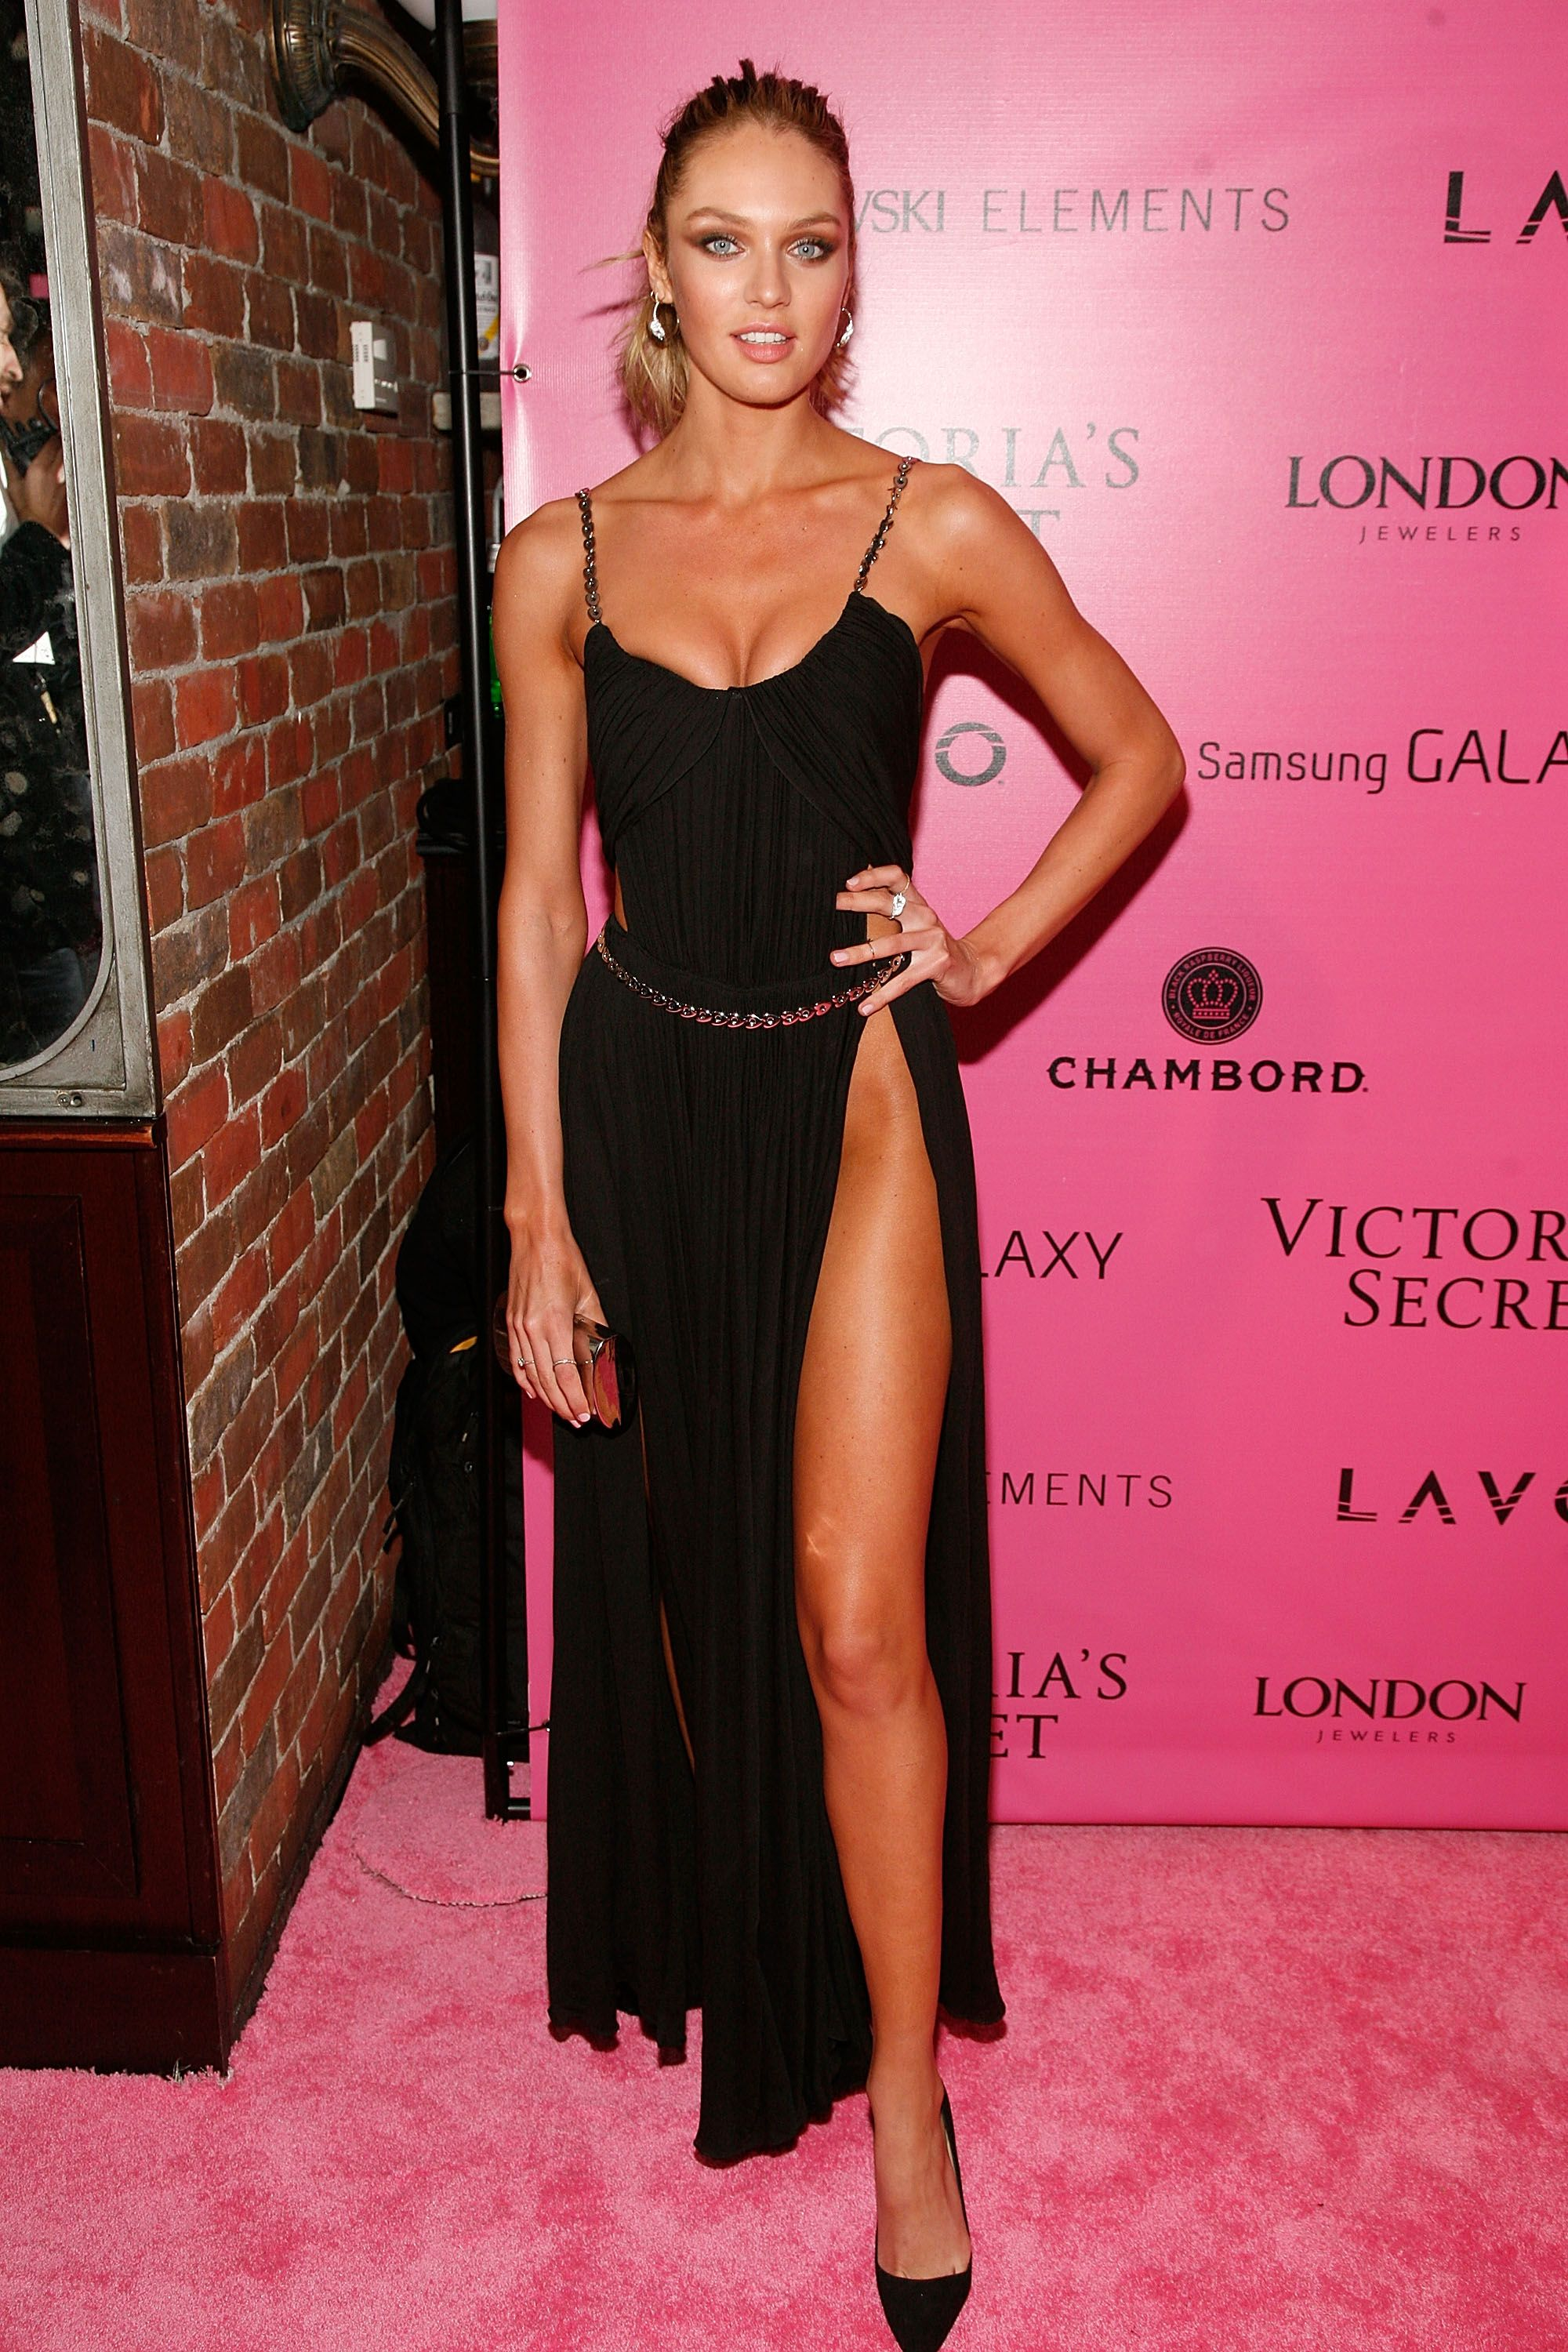 Black dress victoria secret - Candice Swanepoel Chose A Black Dress To Attend The Event In Nyc